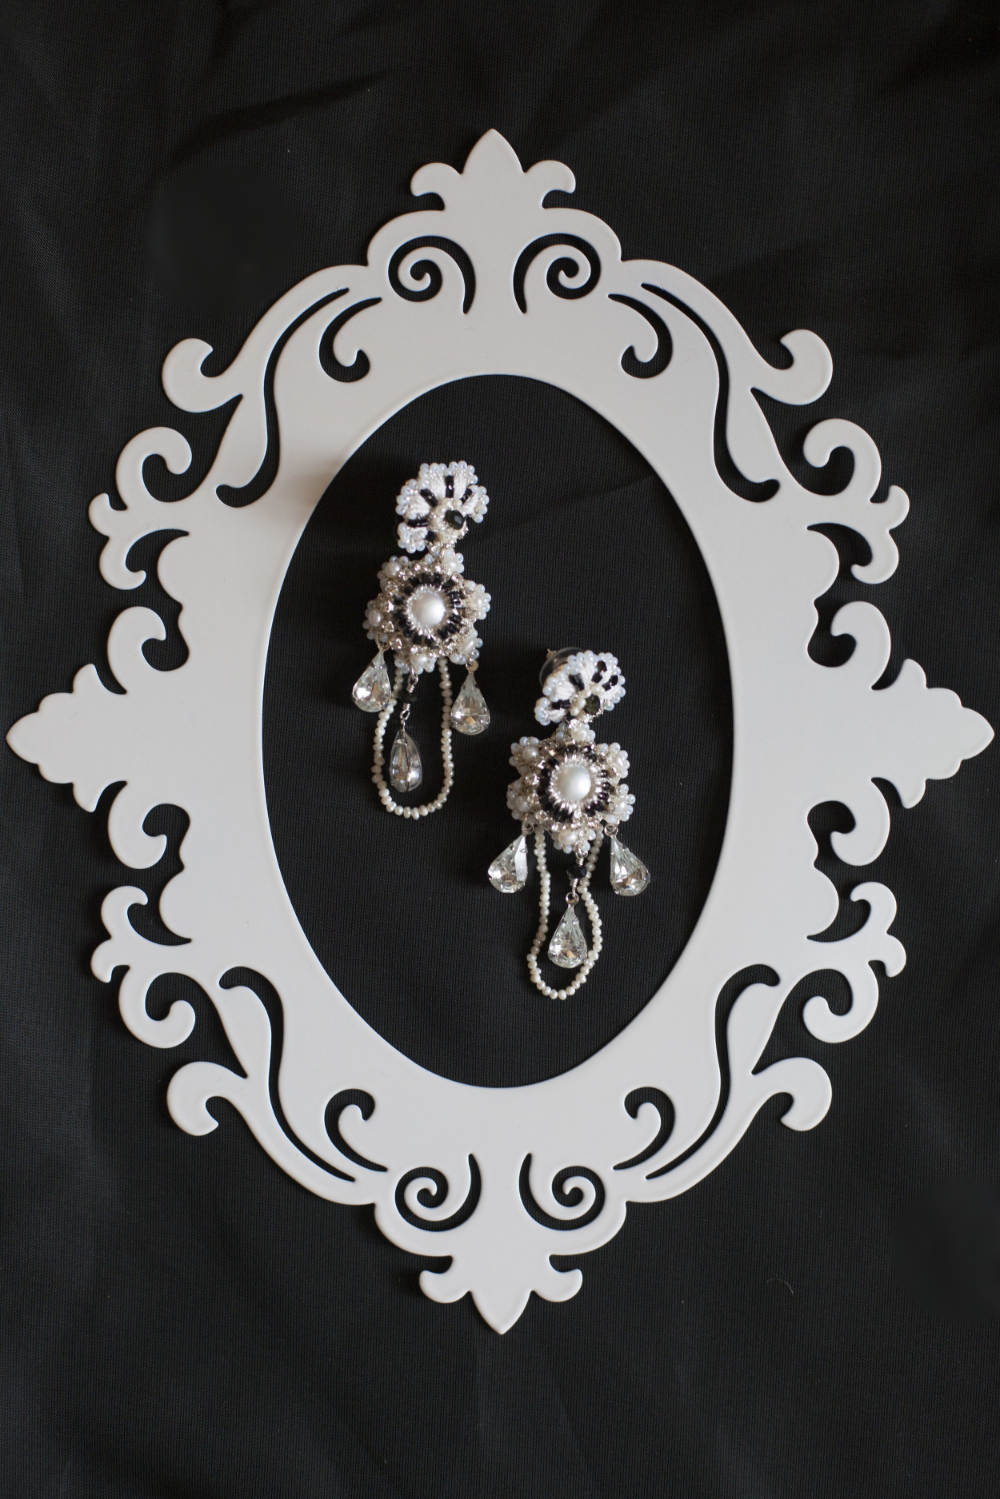 Handmade lace wedding earrings with pearls & crystals